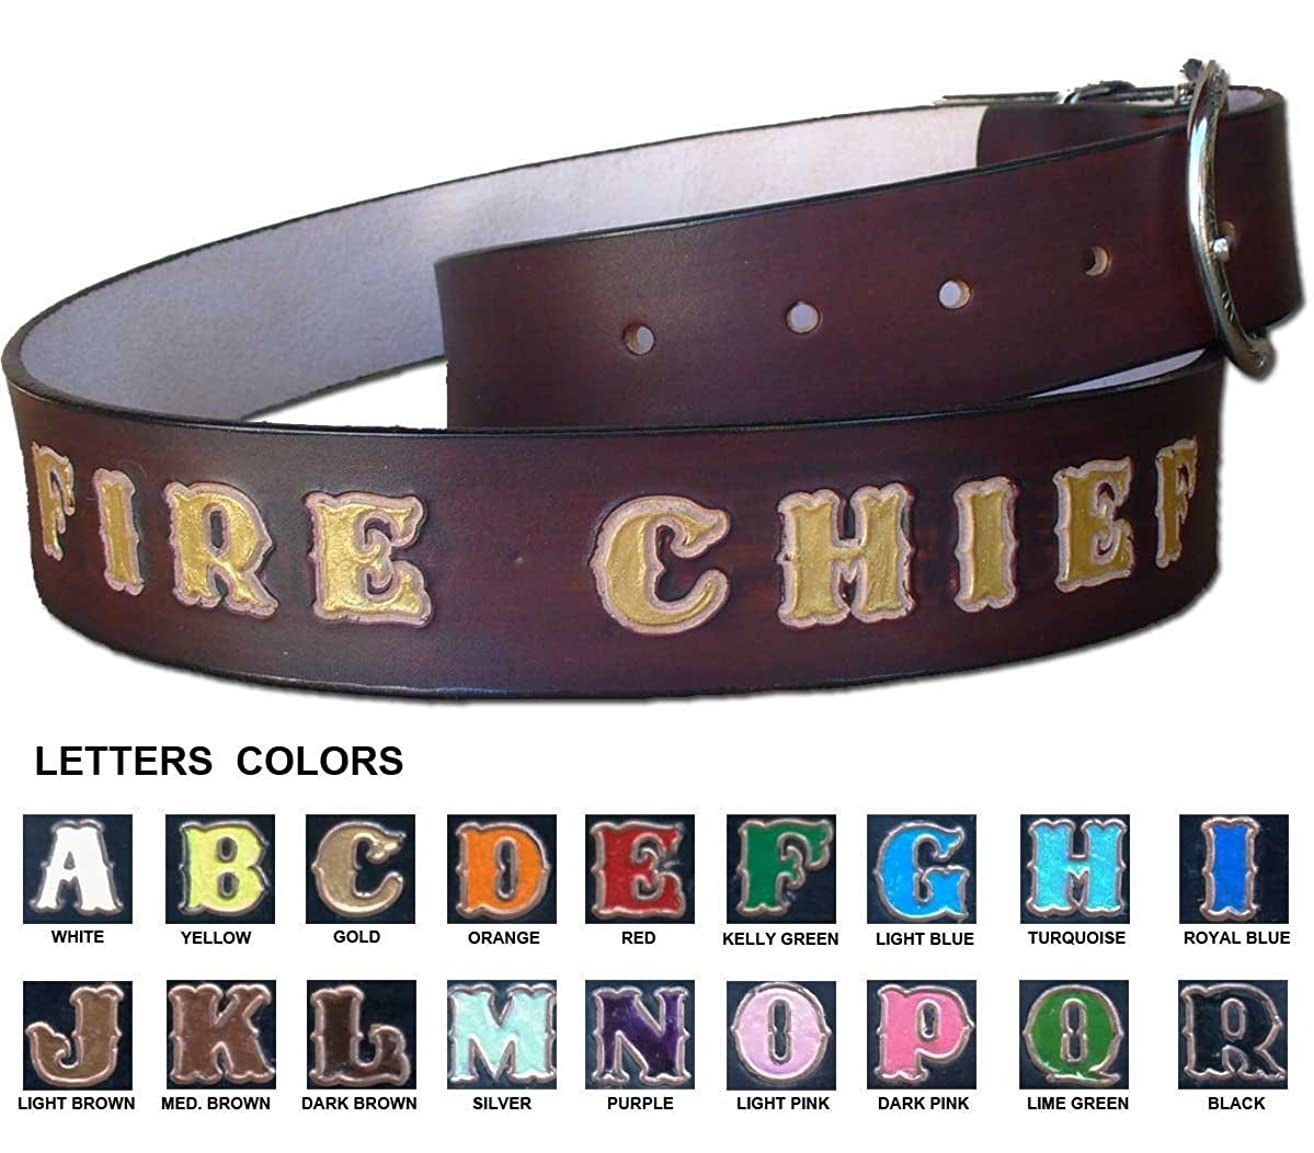 Brown Leather Belt - Custom made Leather Belt Personalized with Your Name/Text - Made in USA by Pitka Leather